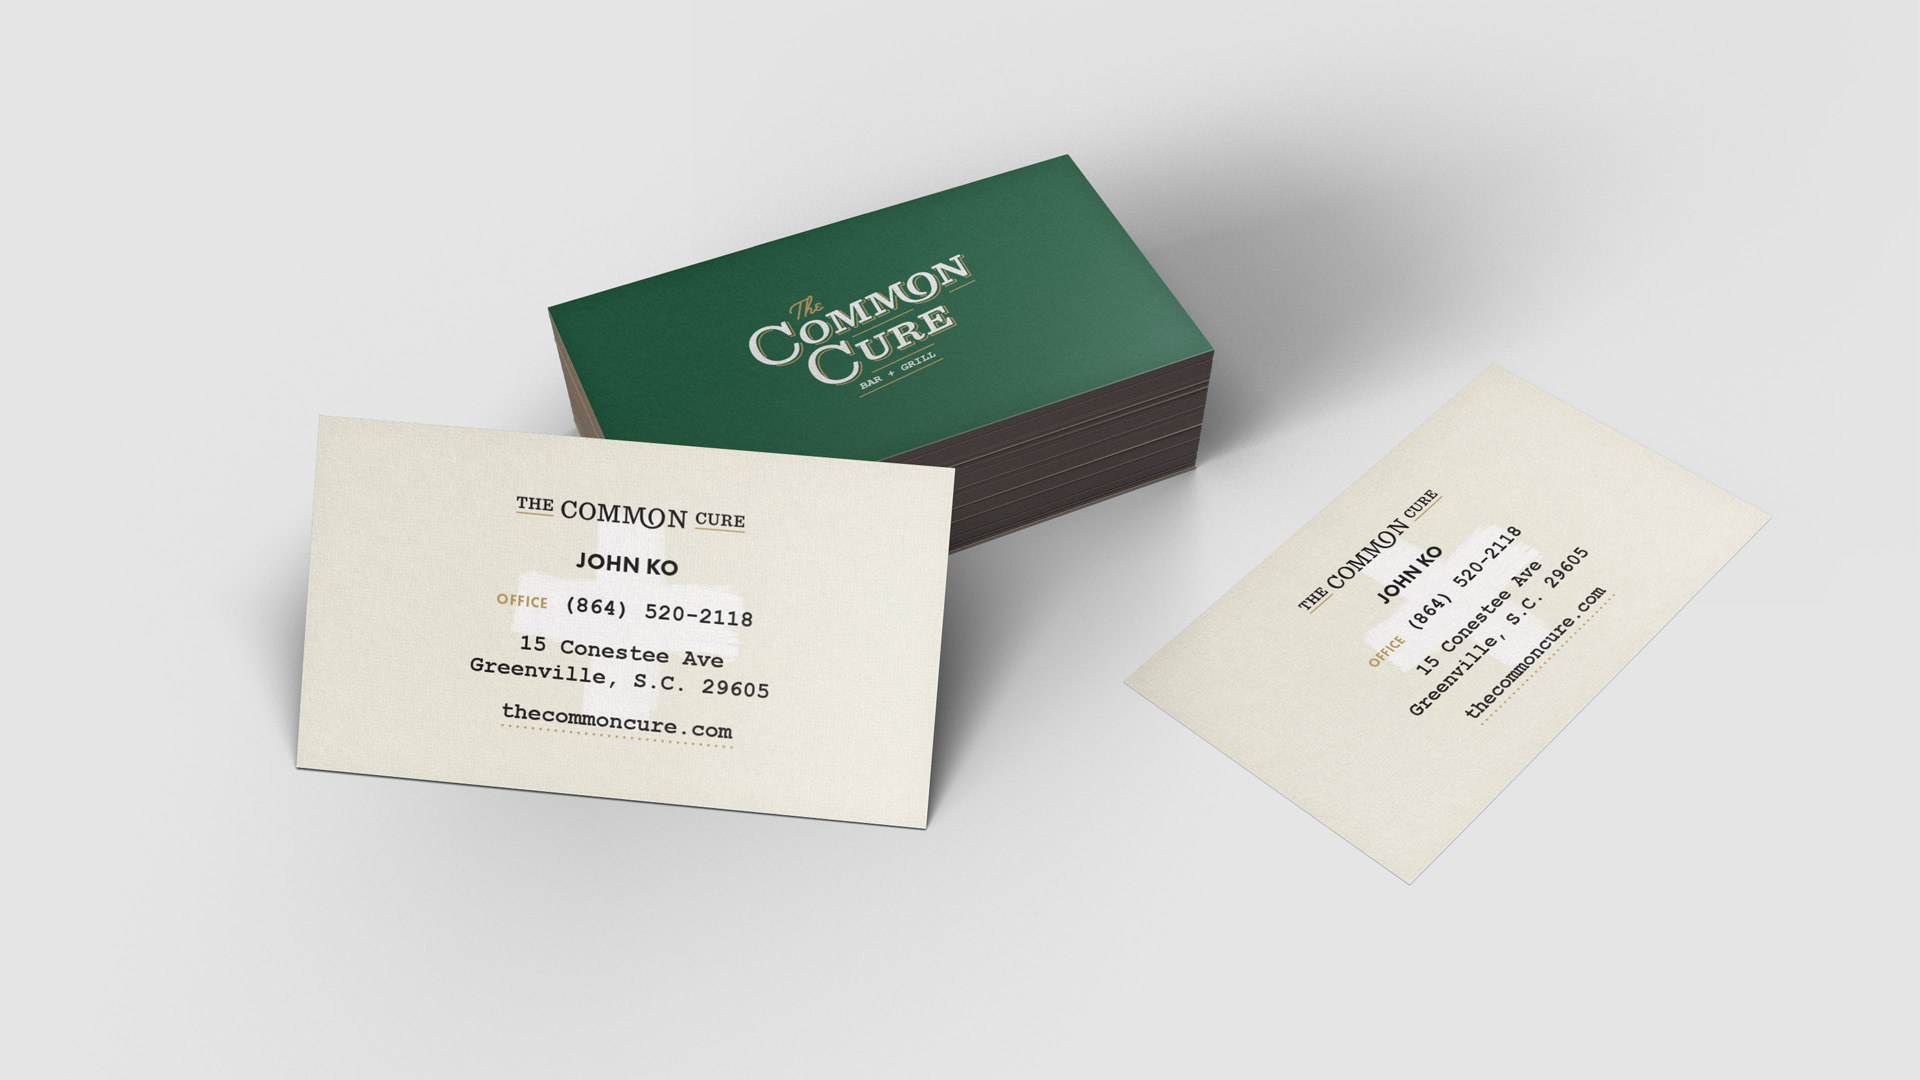 Business Card design for the Common Cure restaurant, part of the brand identity created by graphic artist Russell Shaw.